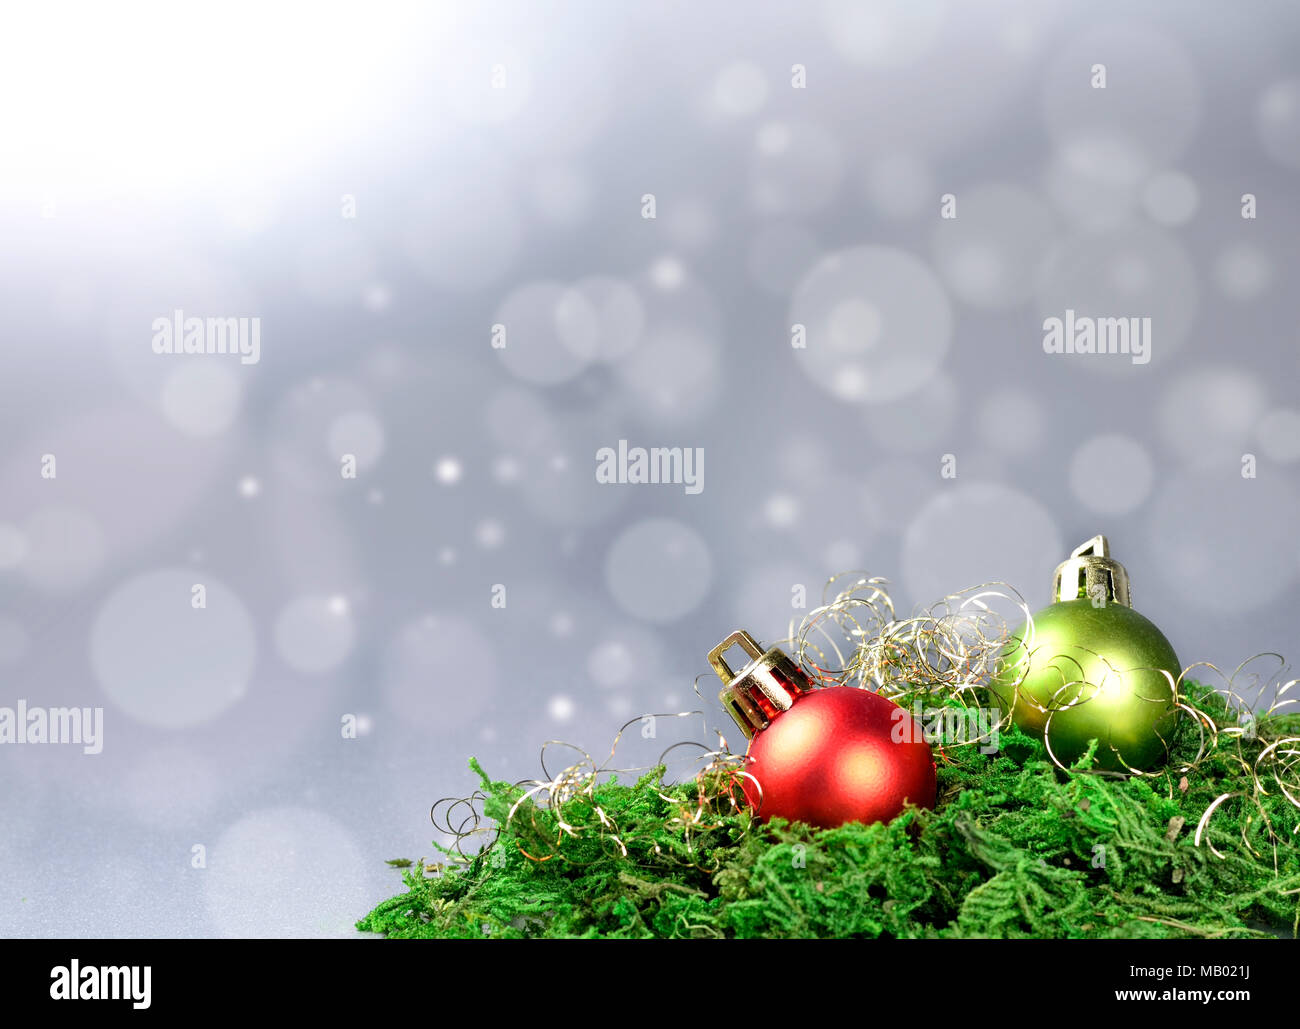 Christmas Tree Background.Christmas Background Or Backdrop With Christmas Tree Balls